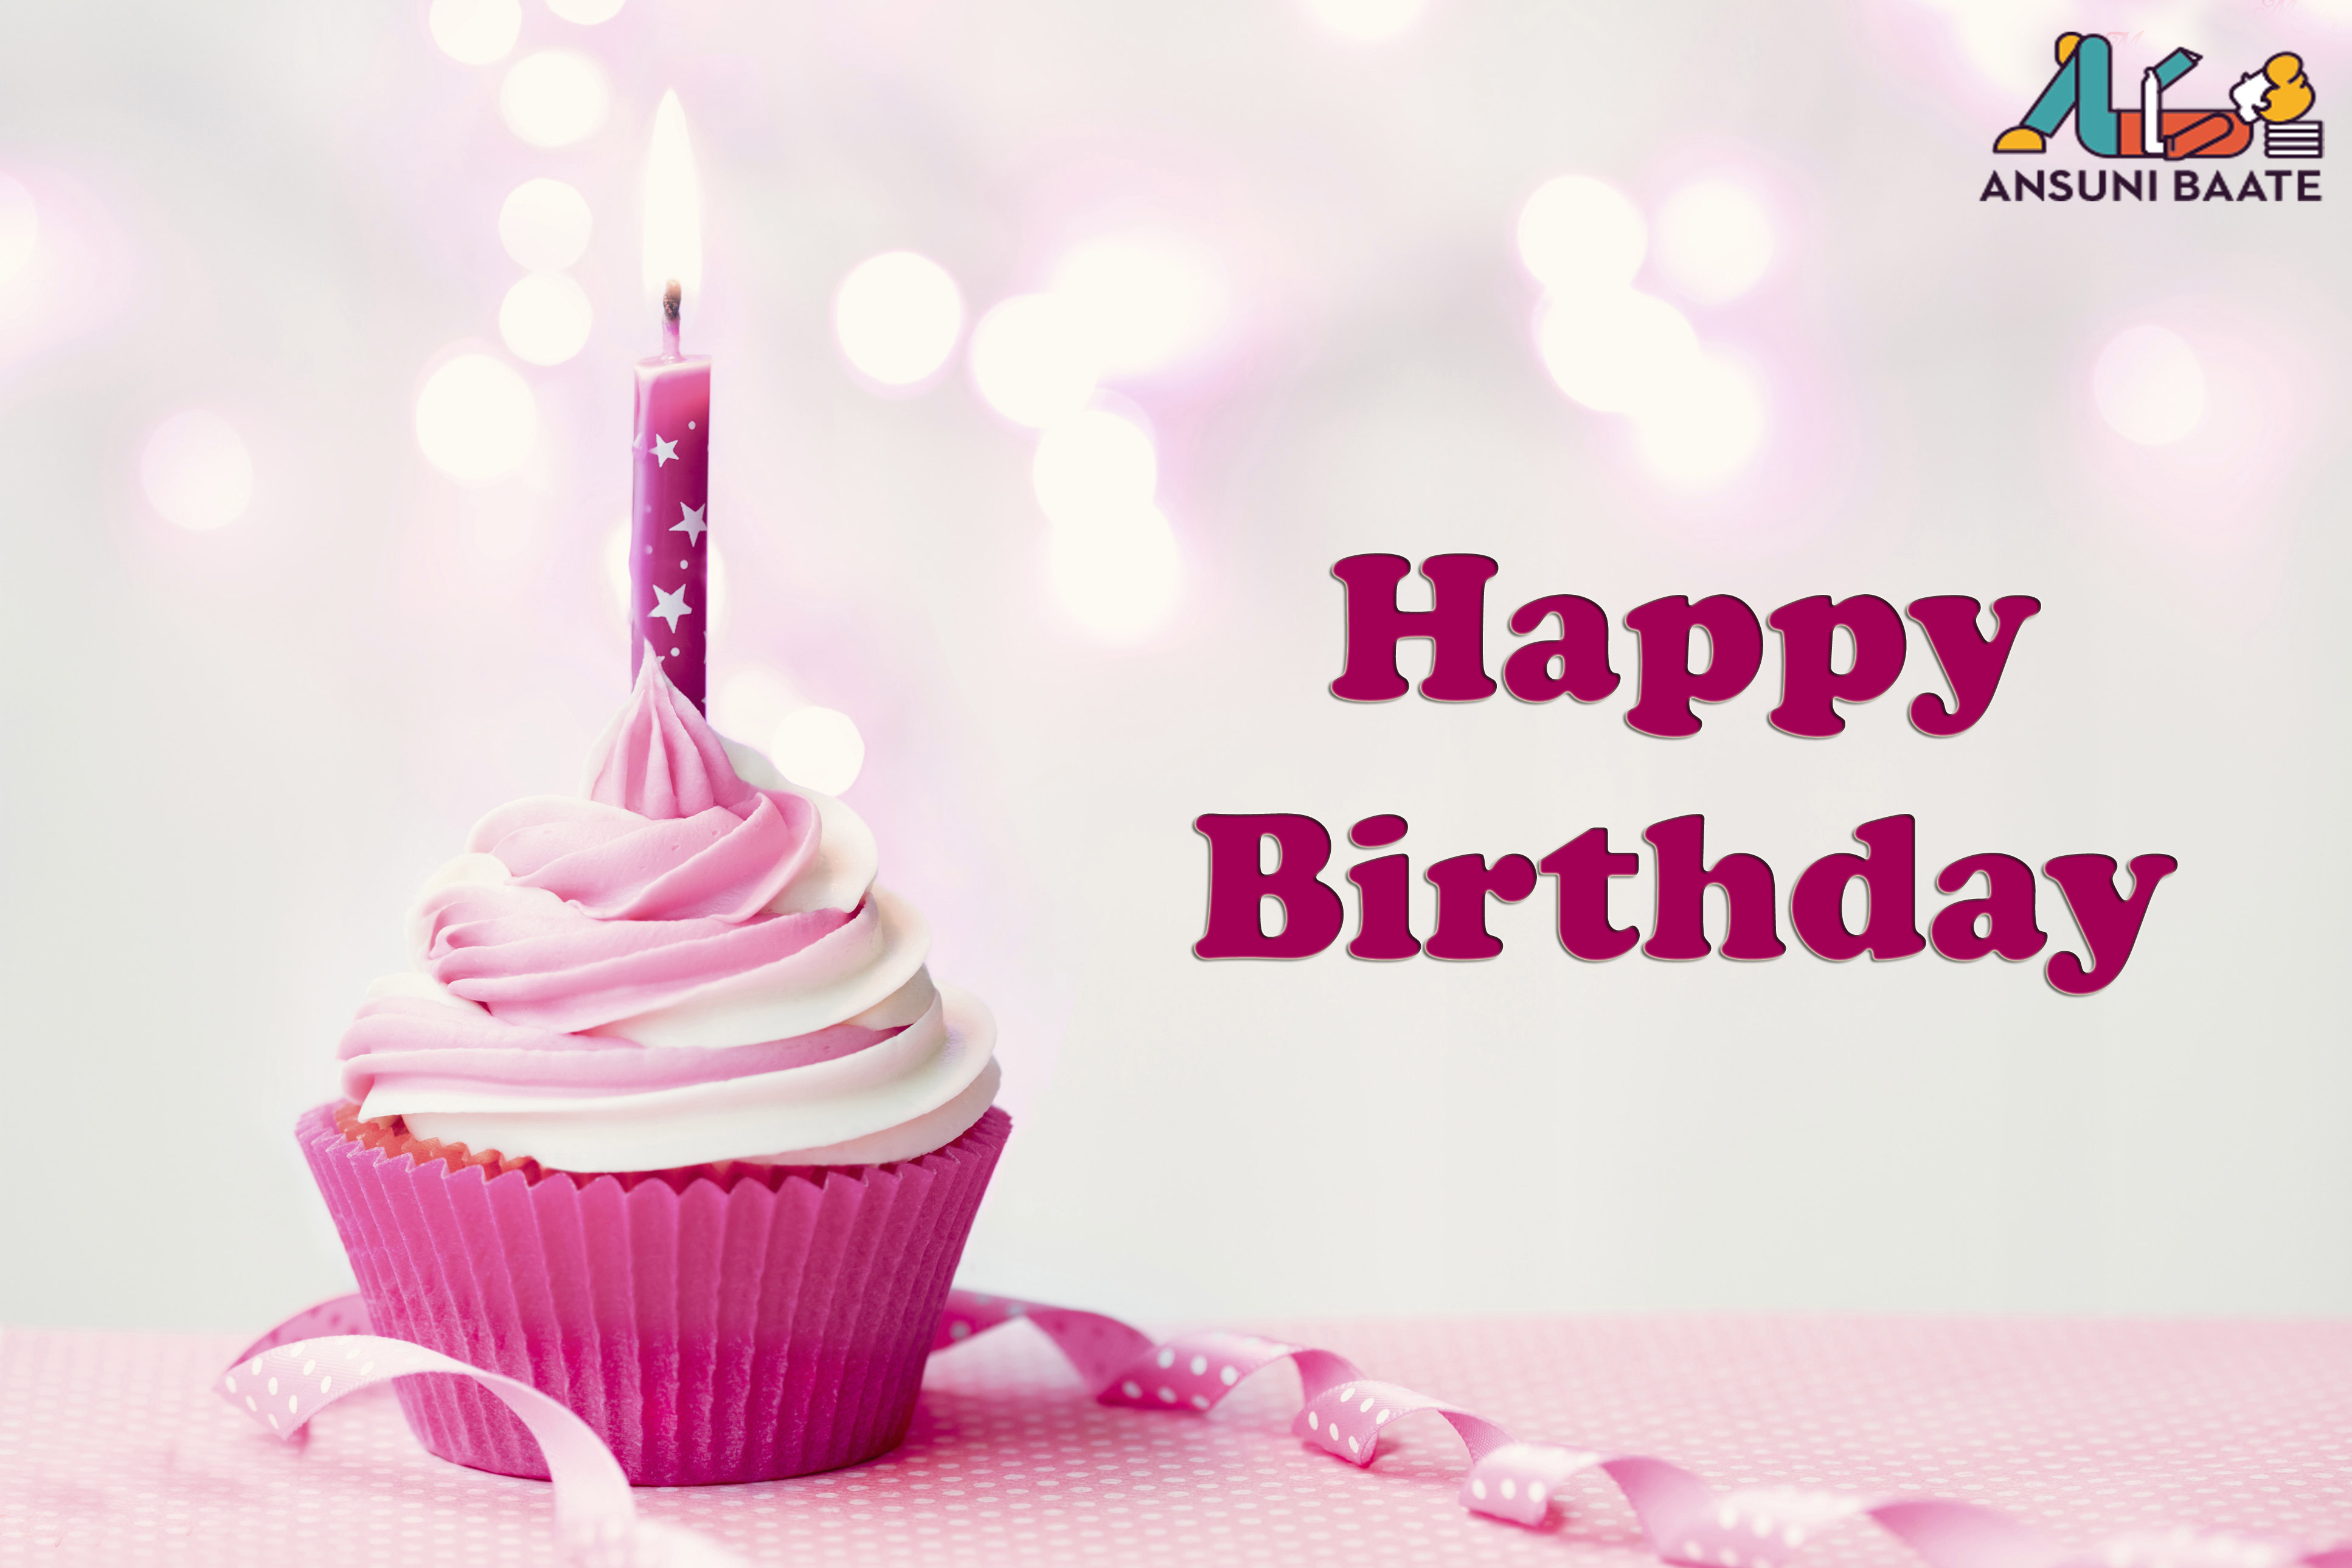 Happy Birthday Images Photo Wallpaper Pics Download Hd Formate Ansunibaate